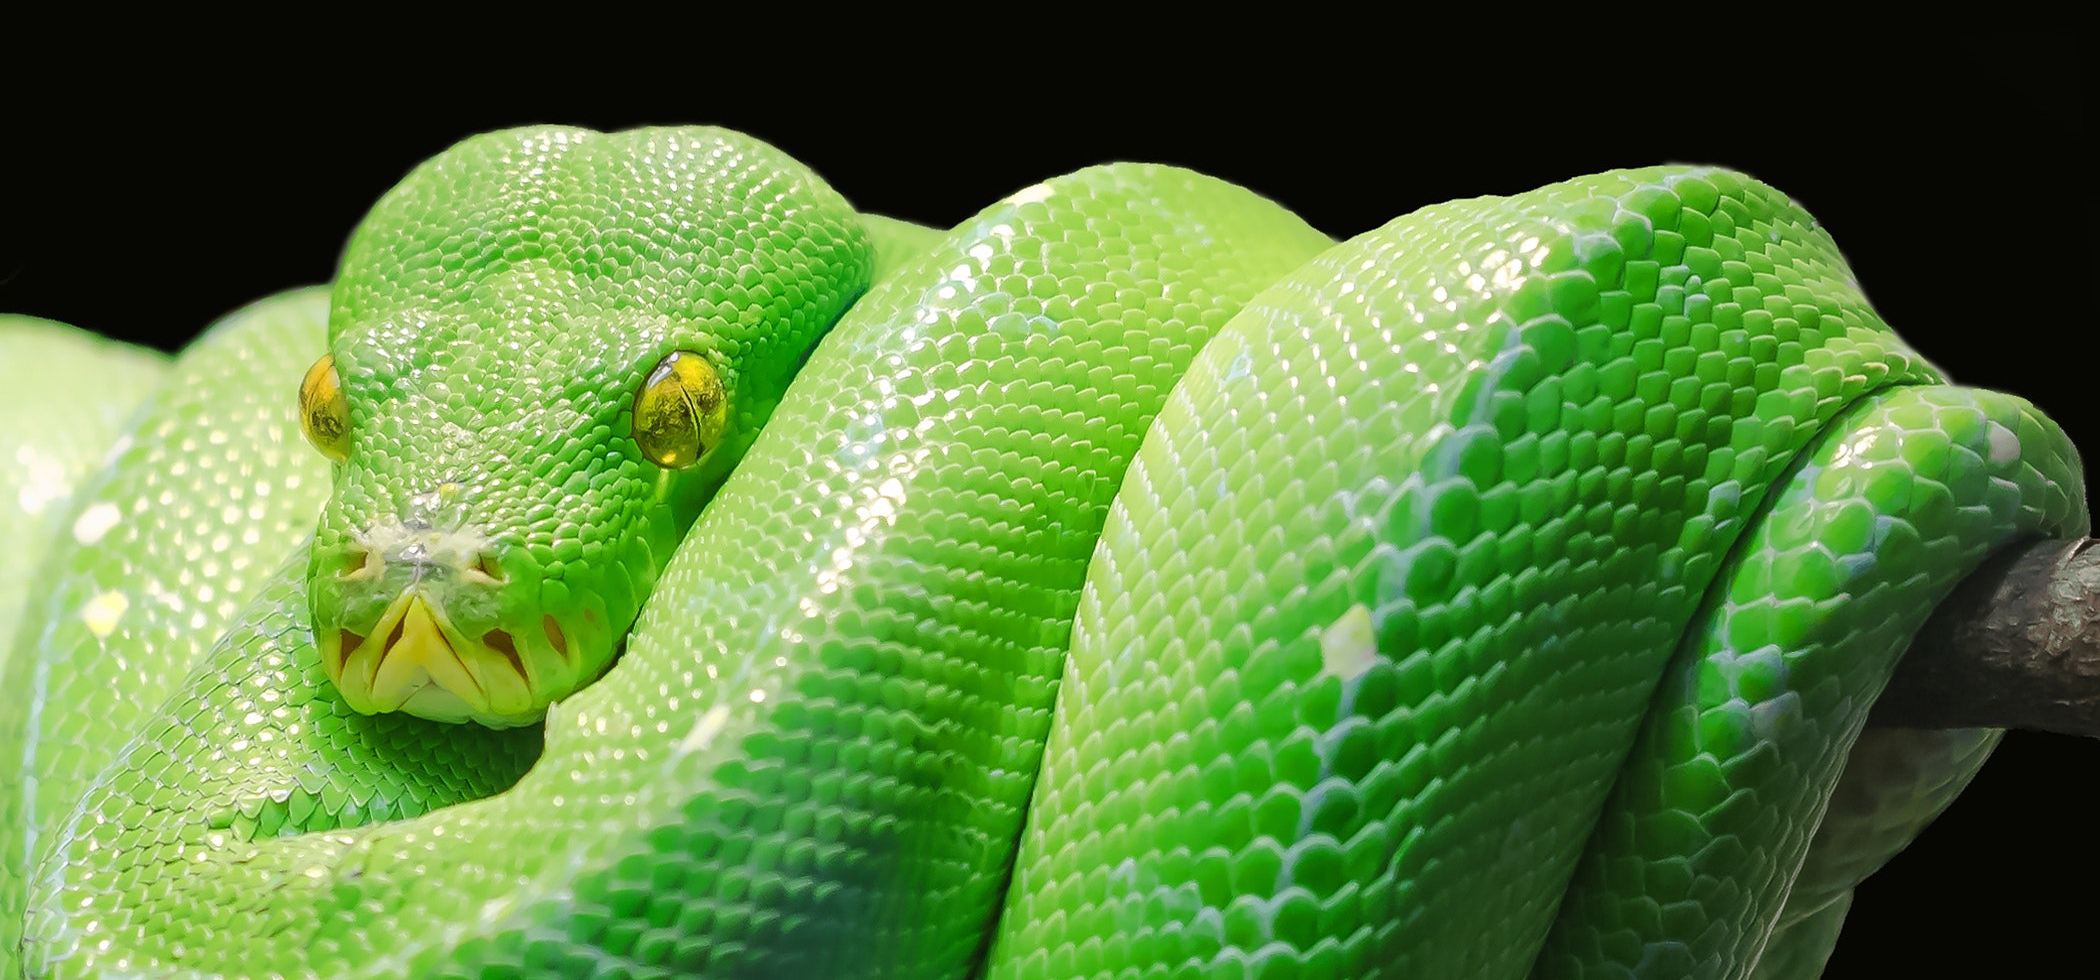 Reptile Theory and Trucking Insurance Rates